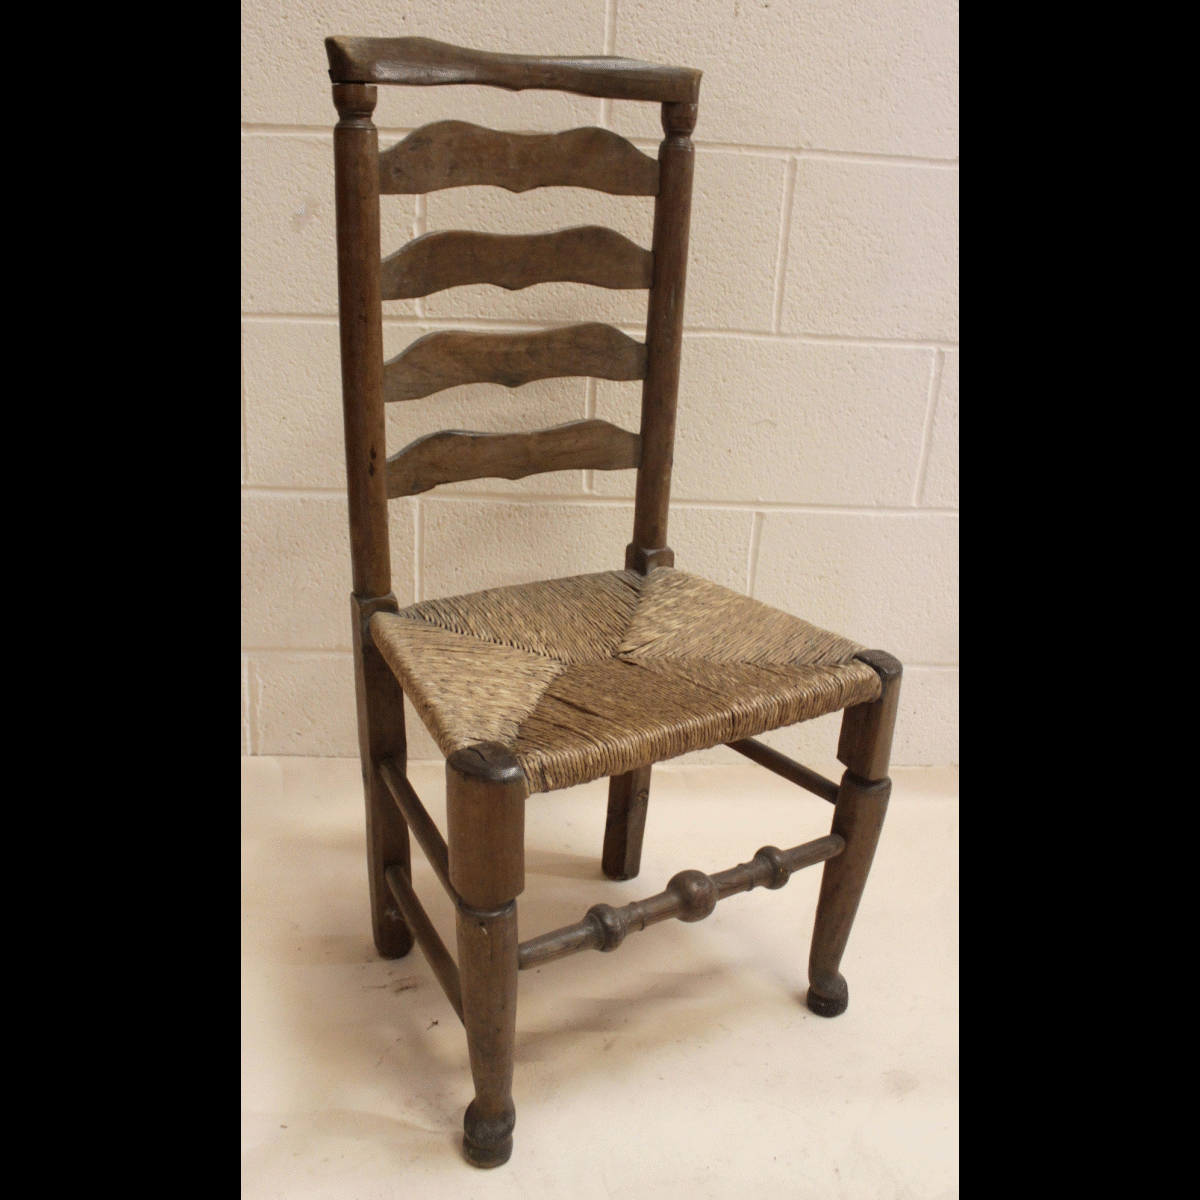 0085214 Tall Ladder Back Chair X1 98cm Long 47cm Wide Stockyard North